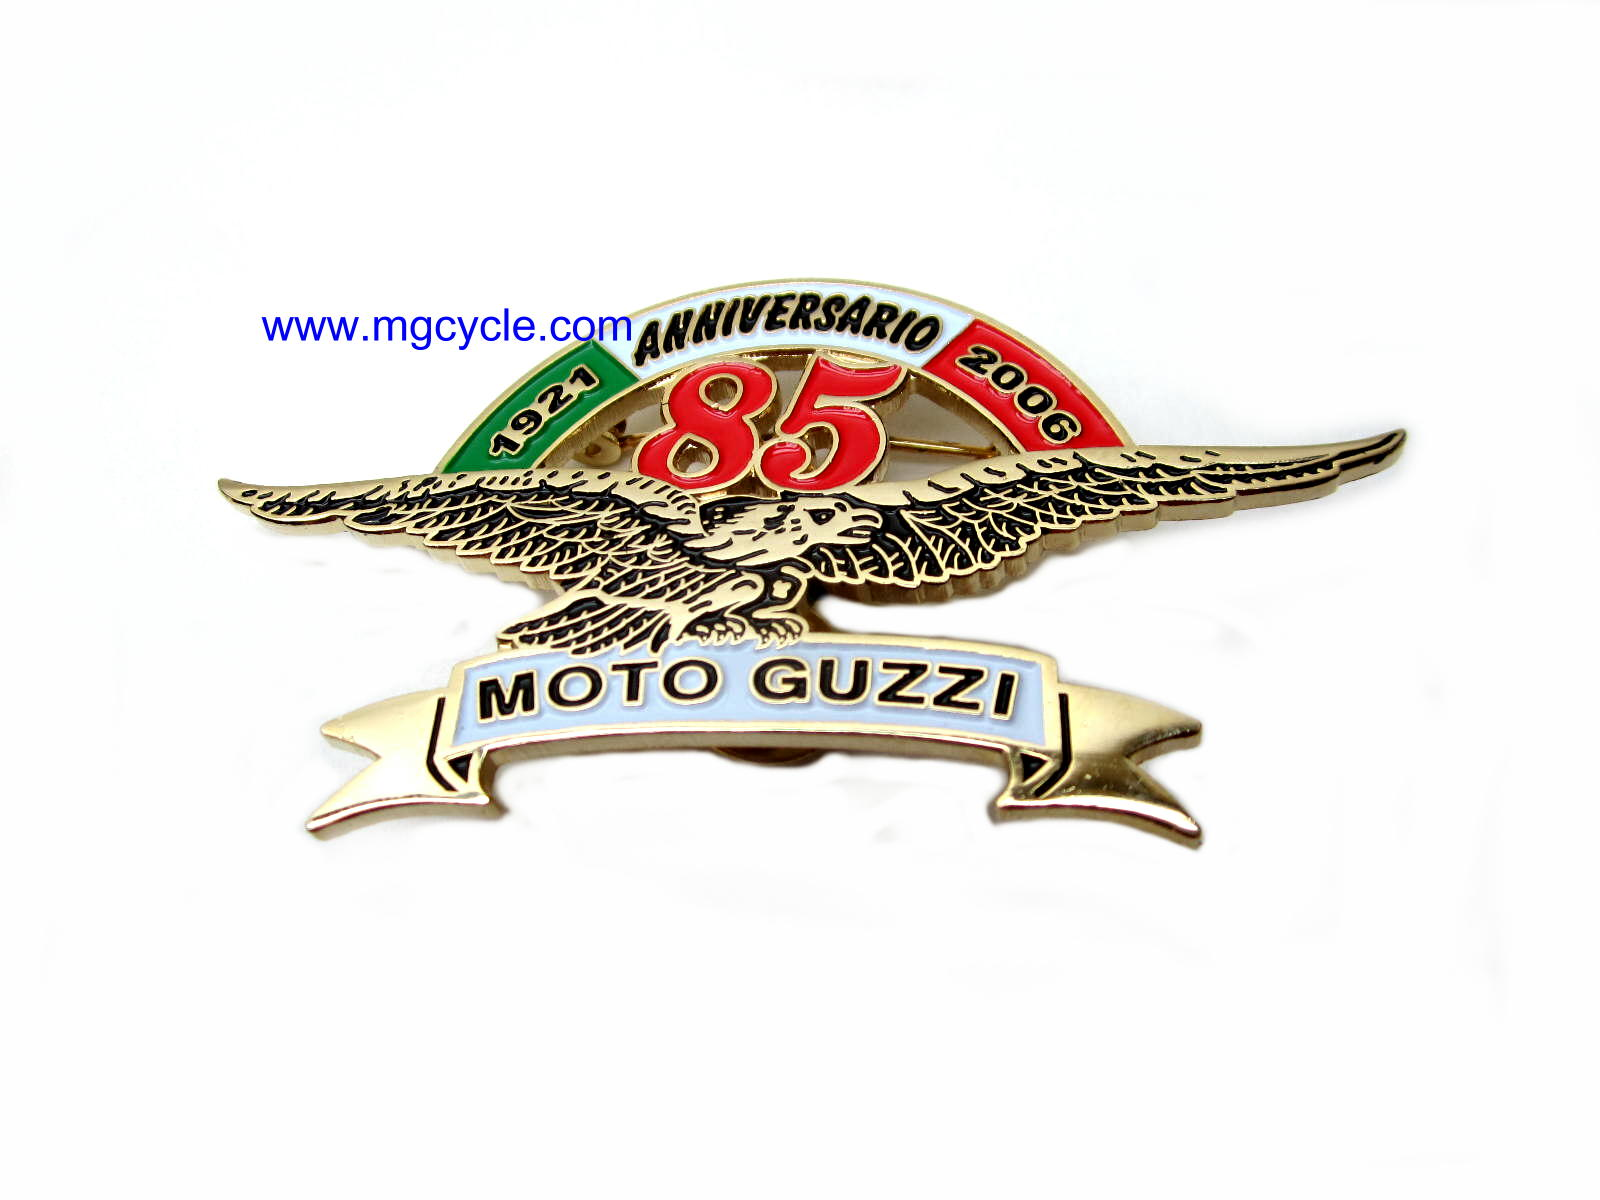 Moto Guzzi 85th Anniversary commemorative pin, 1921 - 2006